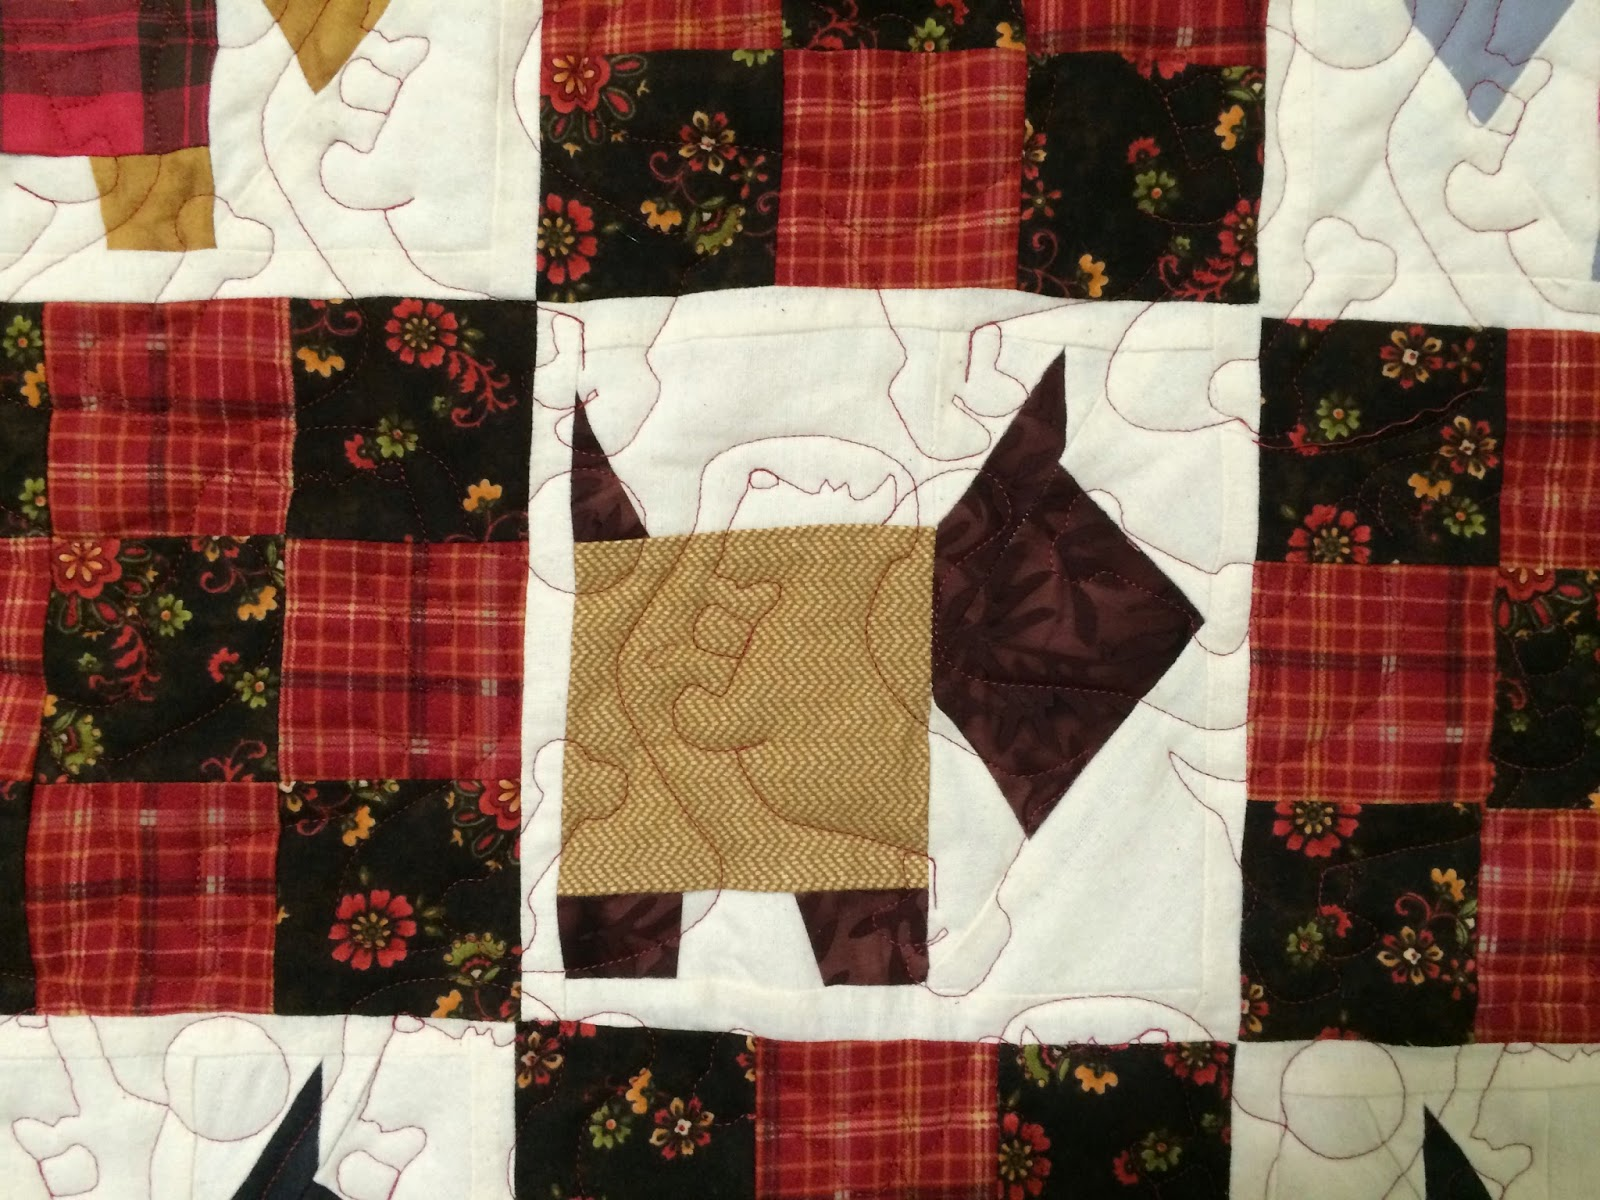 Pearl Combs's Scotty Dogs Quilt